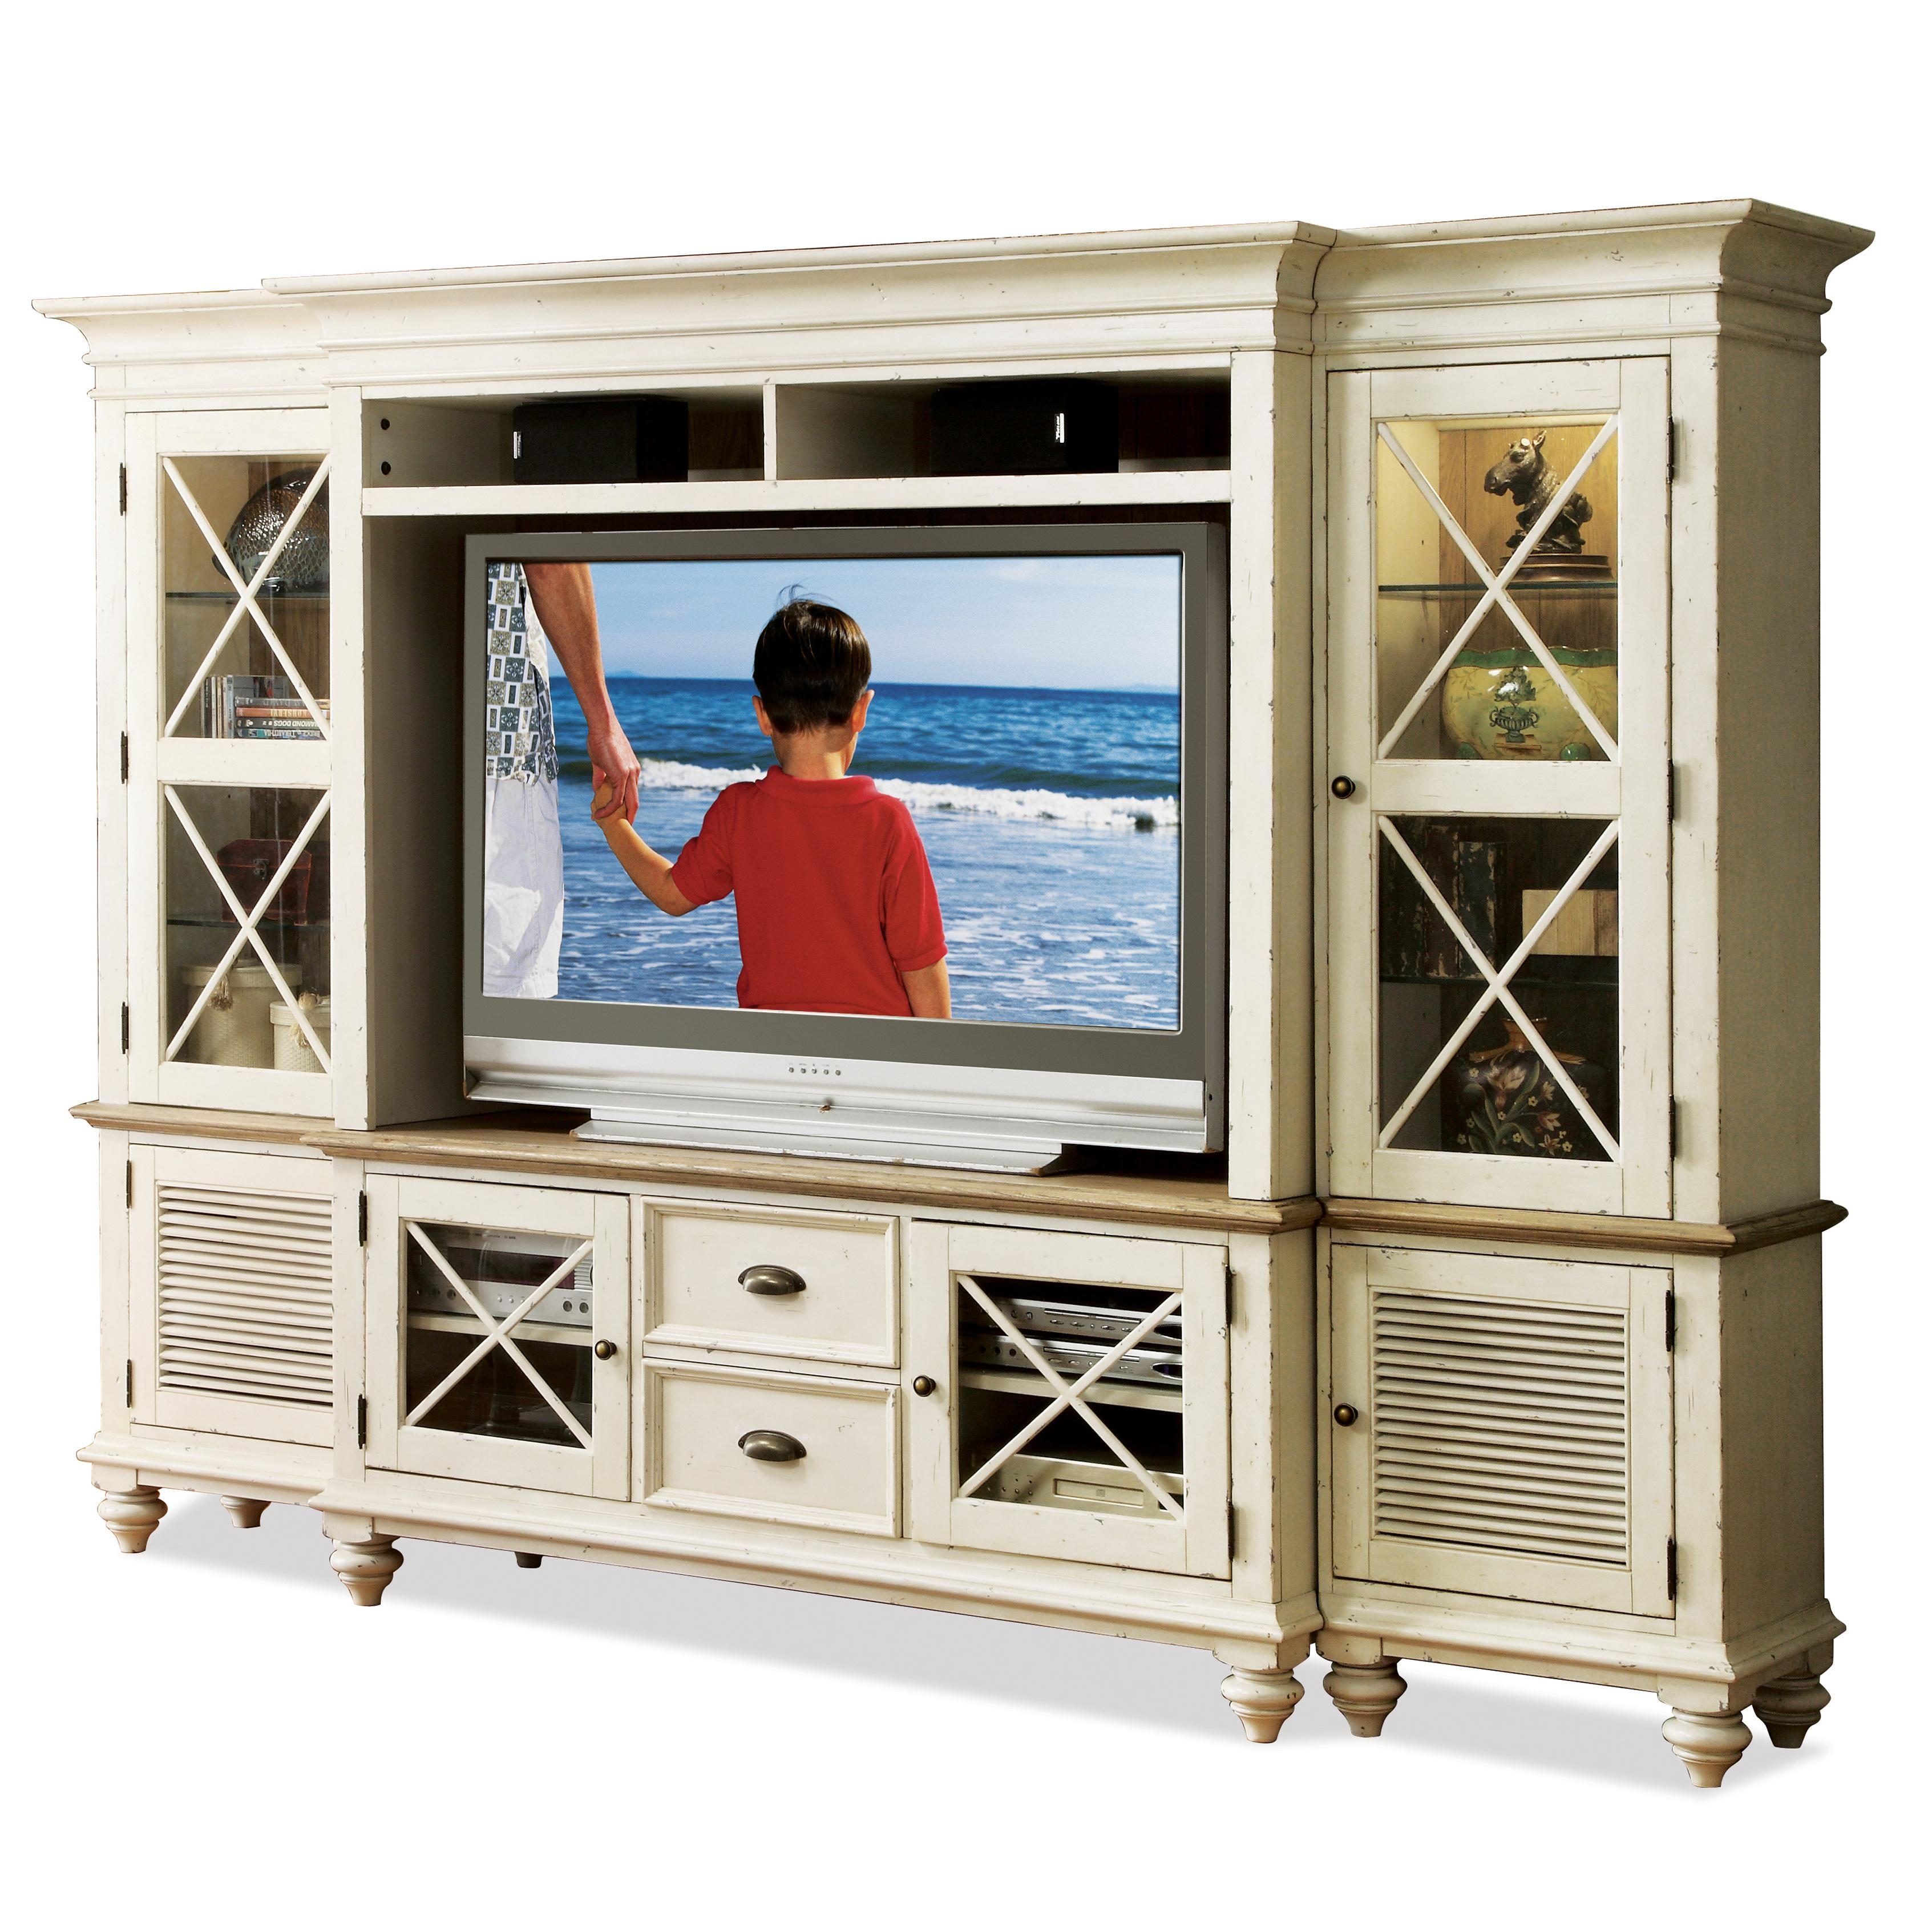 Riverside Furniture Coventry Two Tone Entertainment Wall System With Framed Glass Doors Hudson